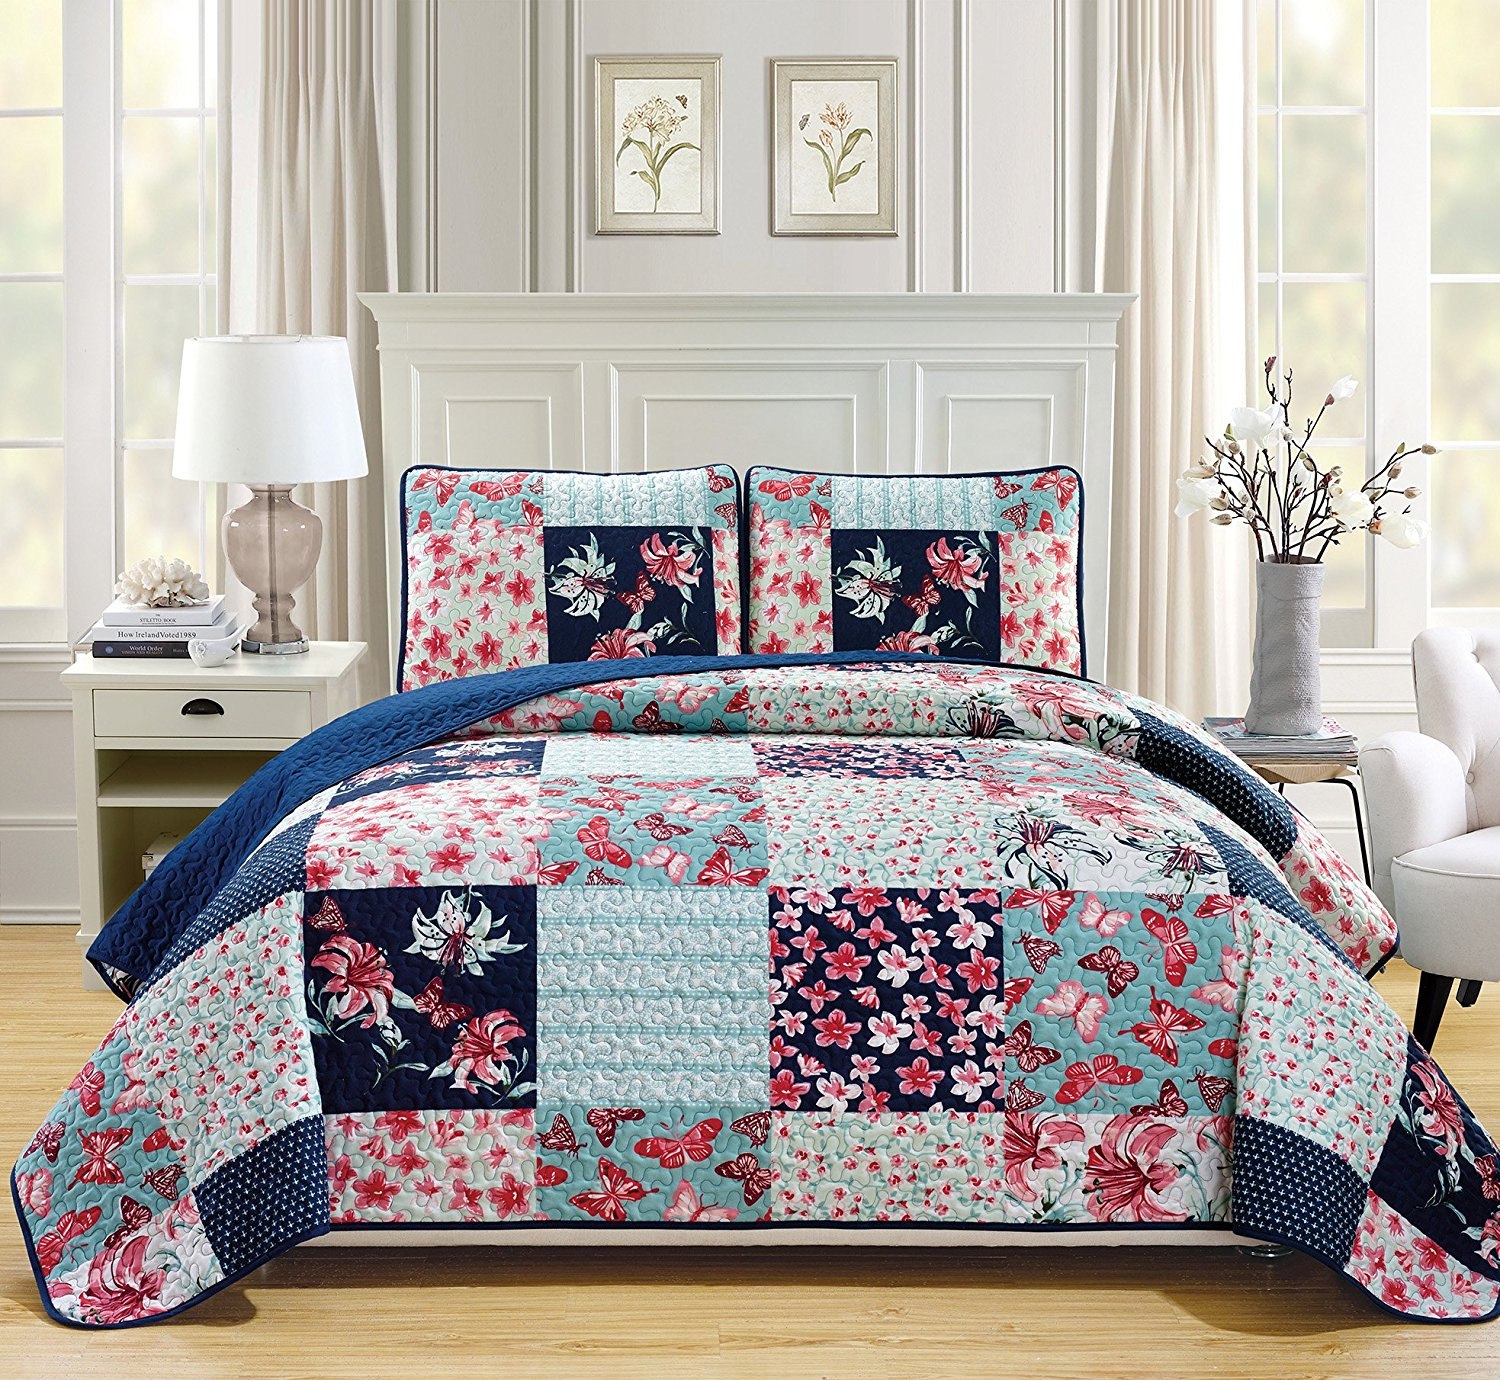 Fancy Linen 3pc Bedspread Coverlet Quilted Flower Butterfly Off White Navy Blue Teal Green Red Over Size New #Stella King/California King